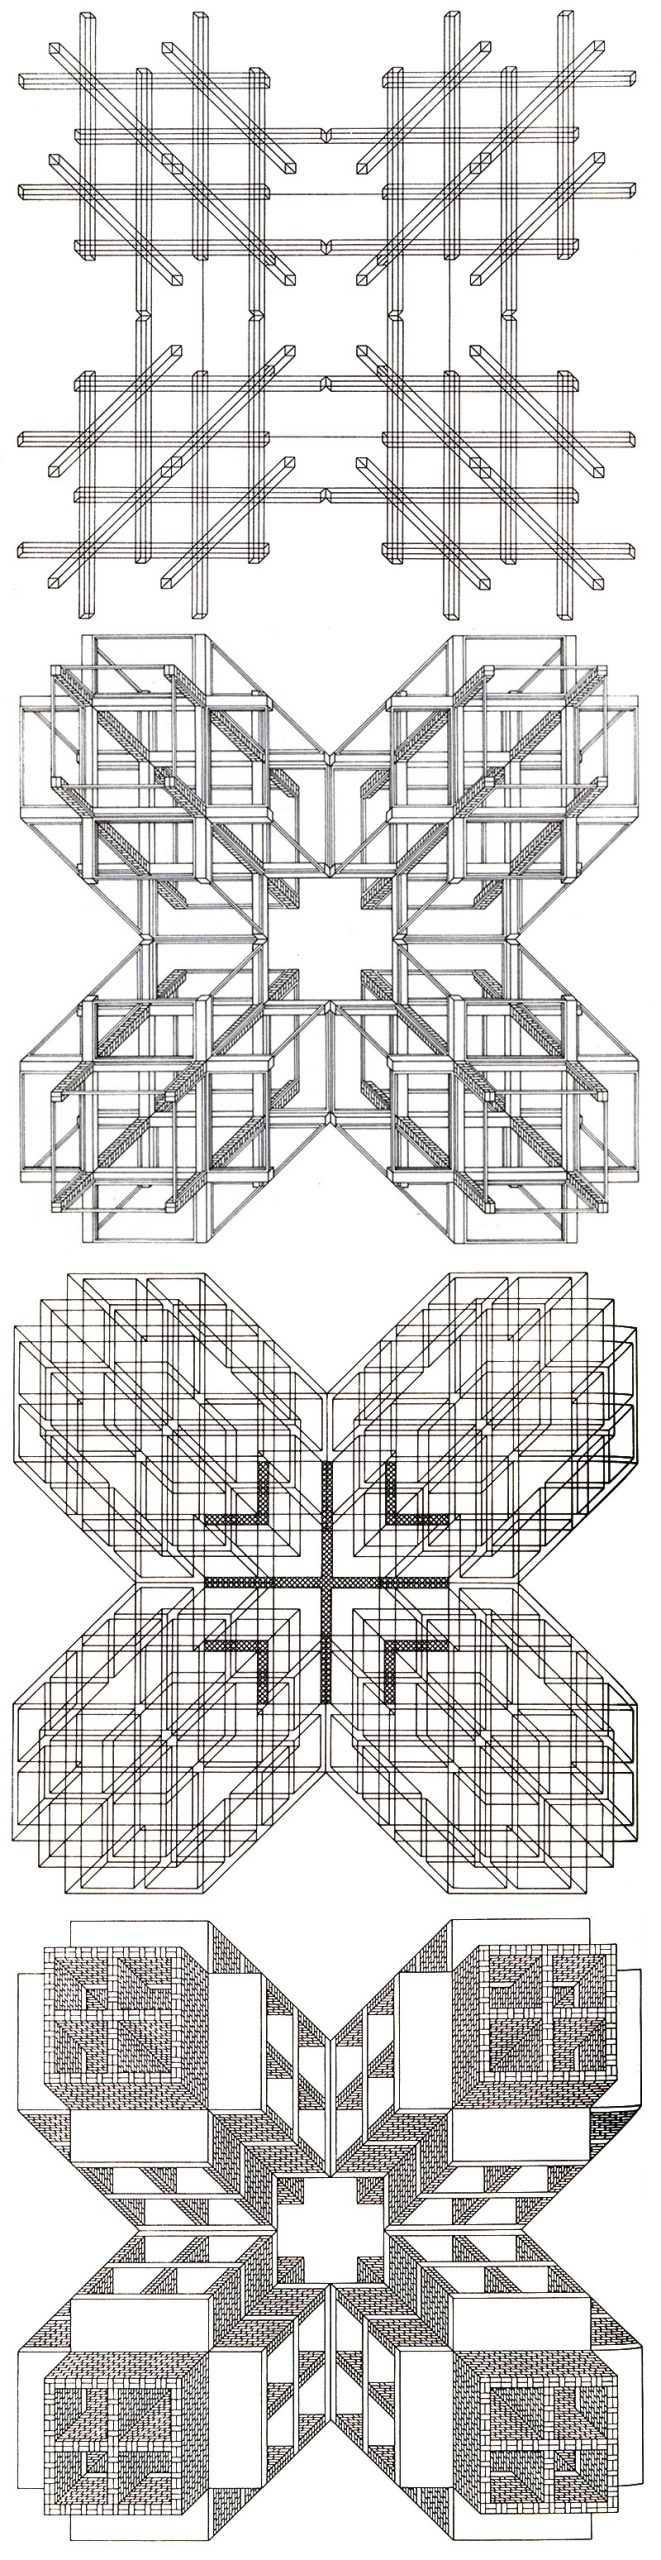 Stanley Tigerman and GL Crabtree Structures Cruciform 2